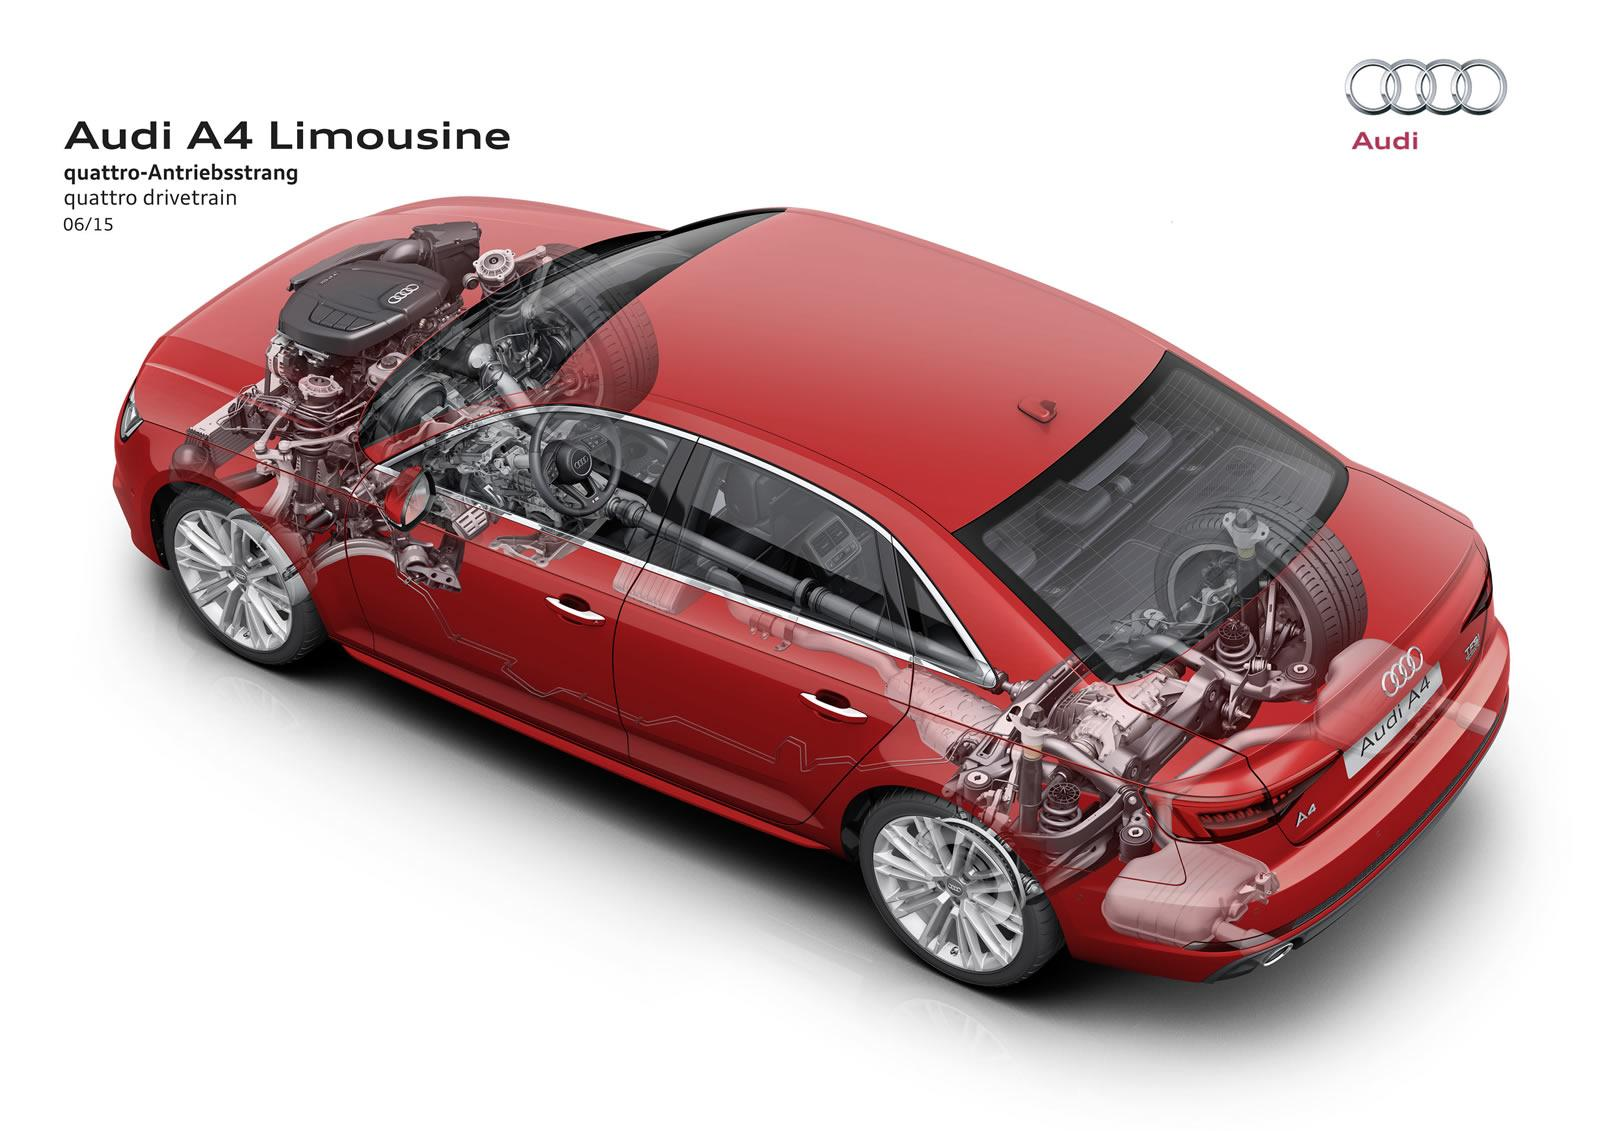 Audi S8 W12 Turbo >> 2016 Audi A4 Sedan Revealed with 120 Kg Weight Loss and New Engines - autoevolution